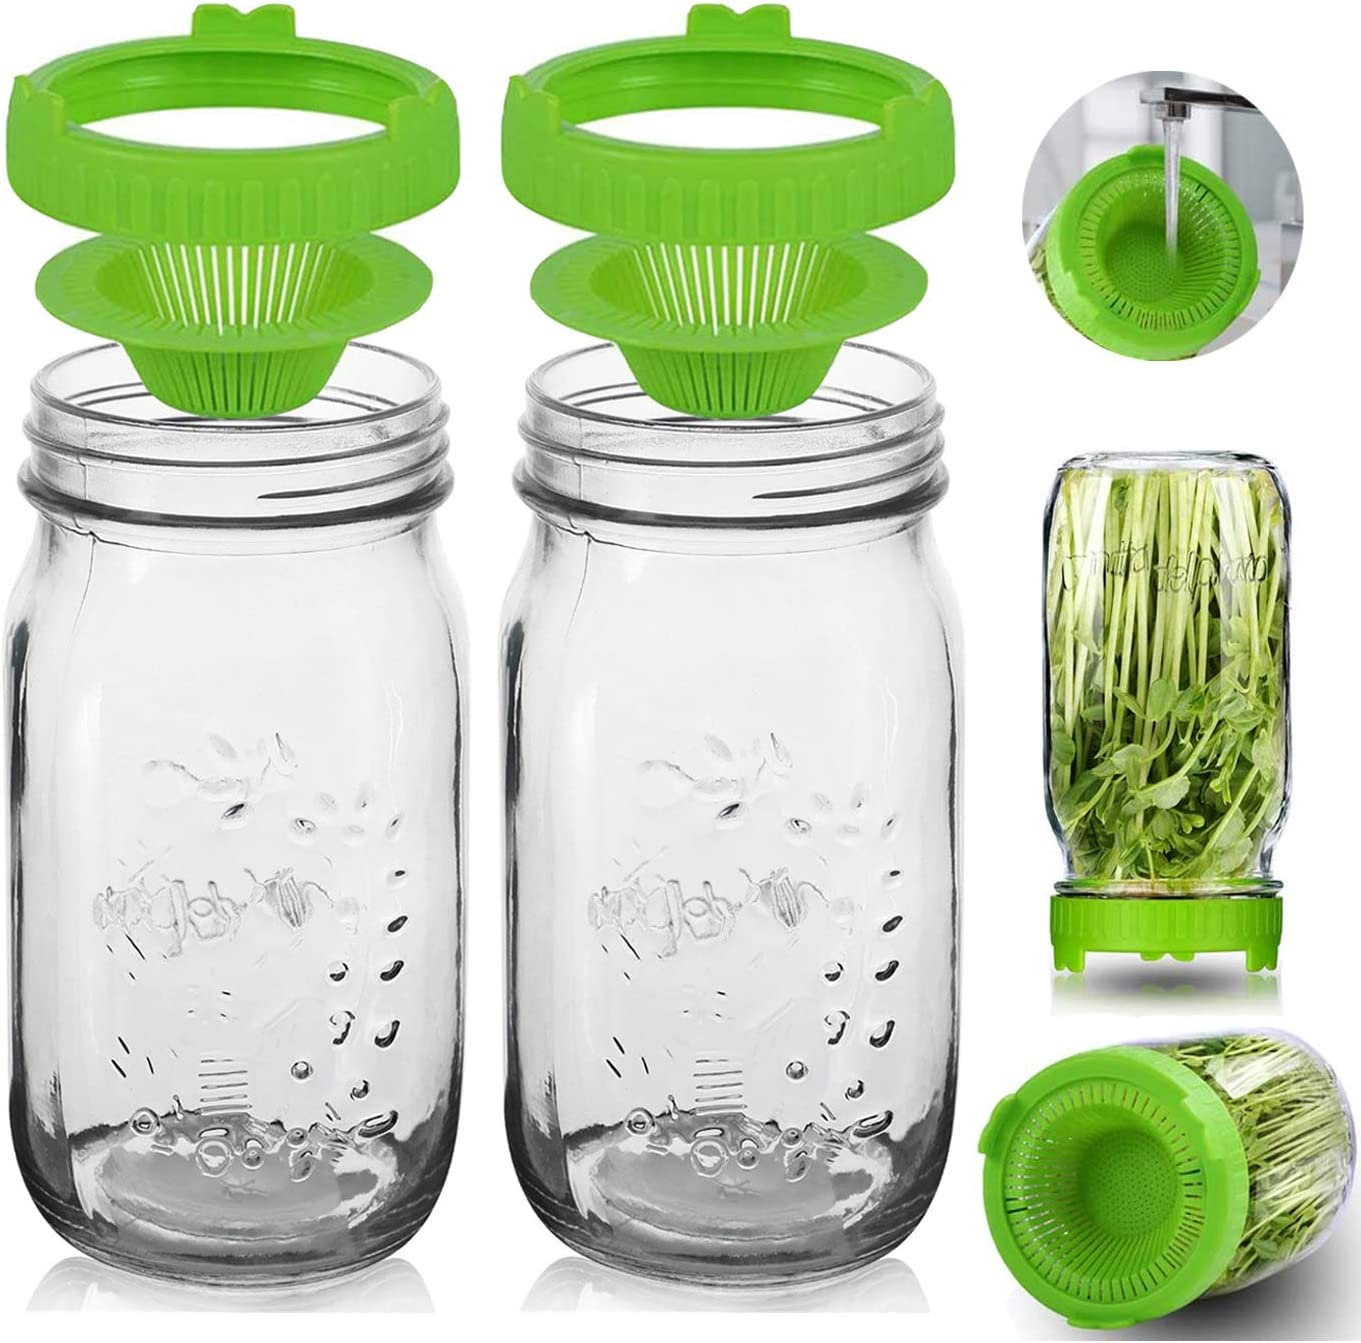 Sprout Growing Kit - 2 [Alternative dealer] Wide of Mason Jar Limited time trial price Mouth 36oz Sprouting